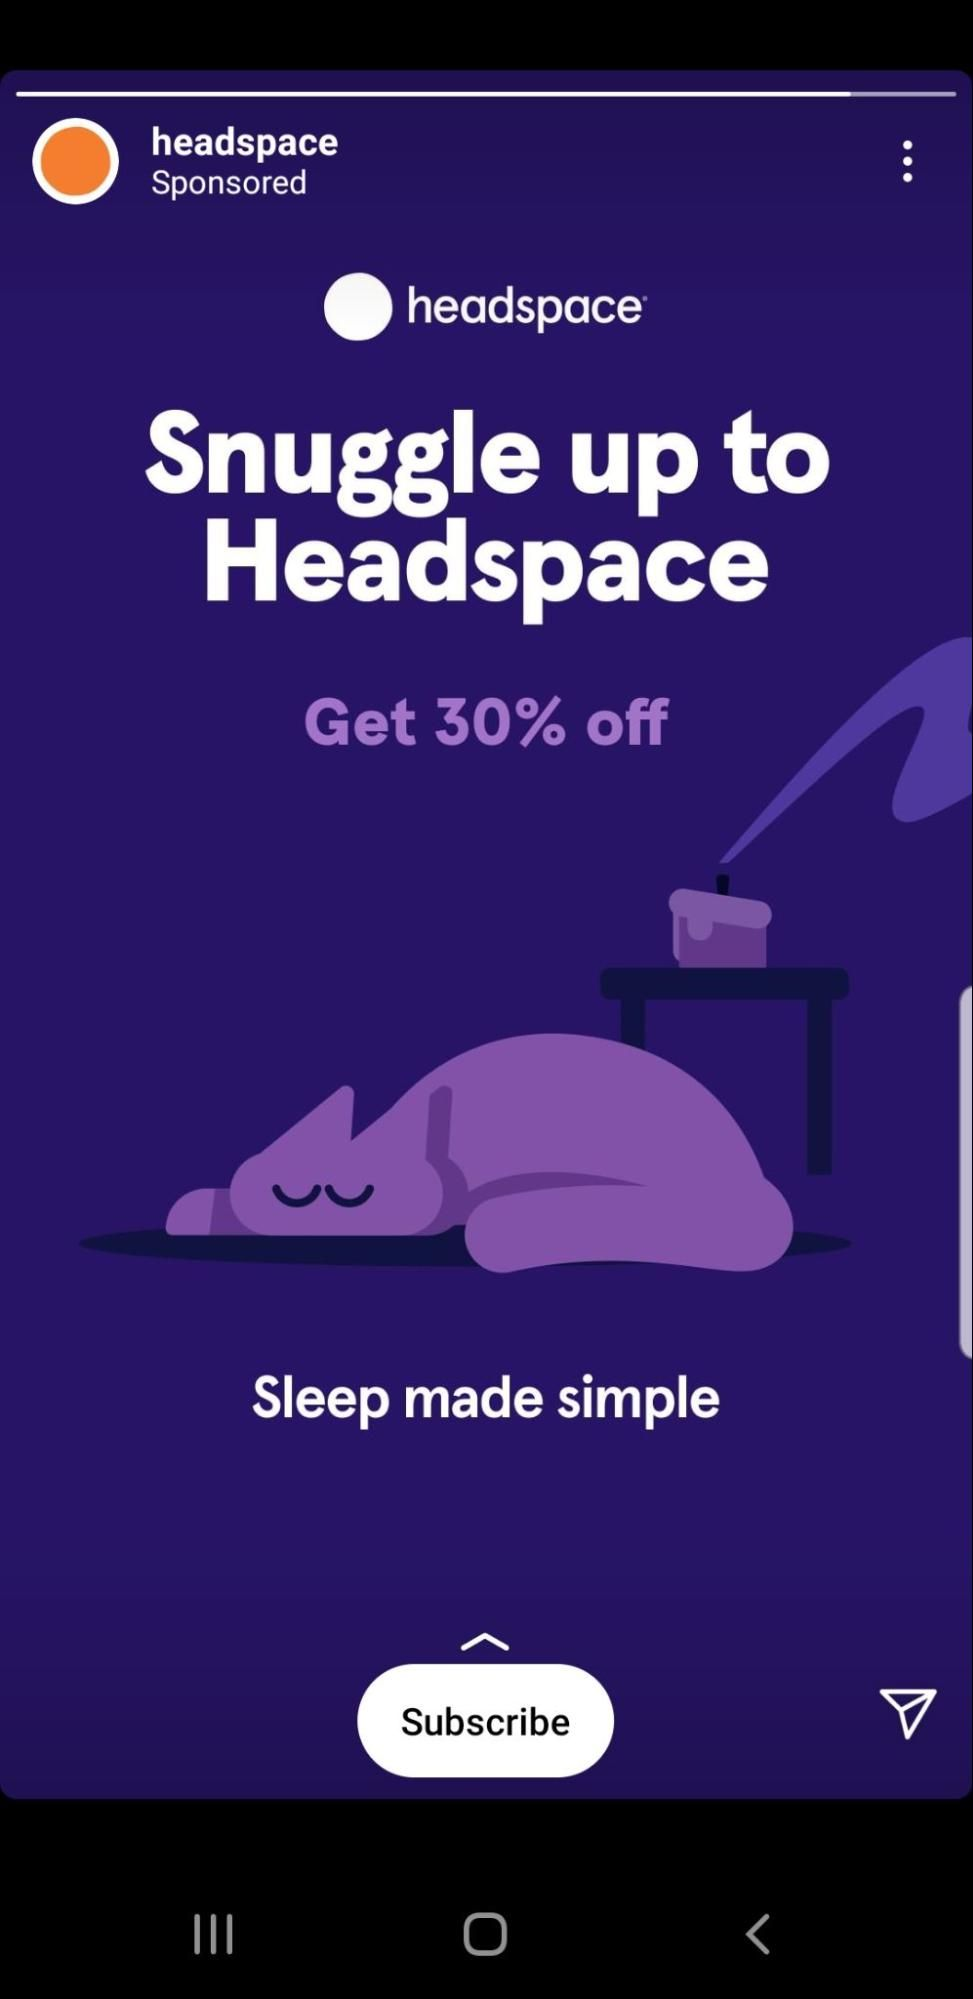 Headspace Instagram Ad CTA Example